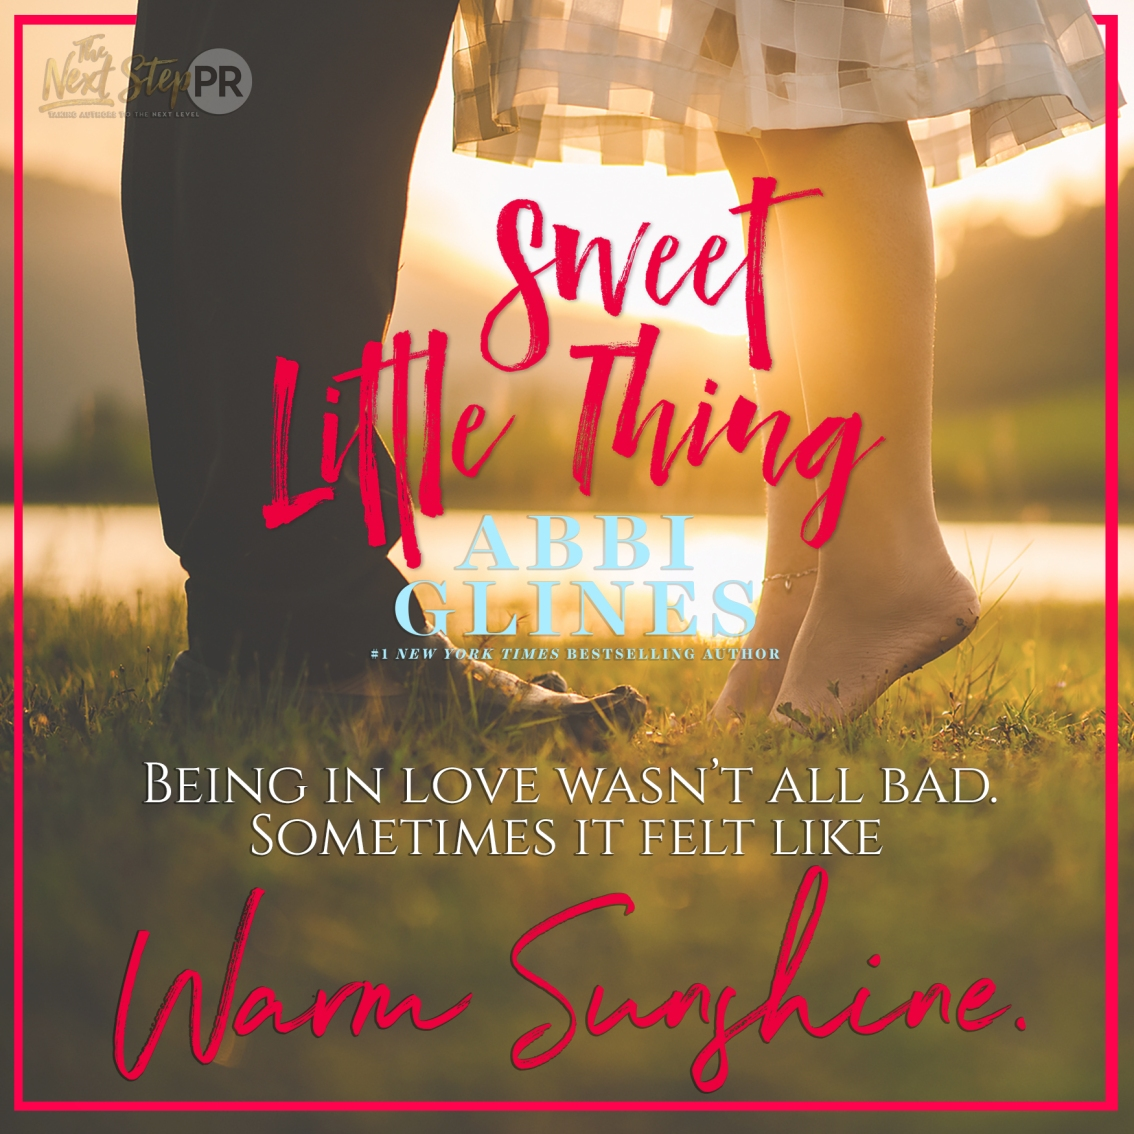 March 12 Sweet Little Thing Teaser-2